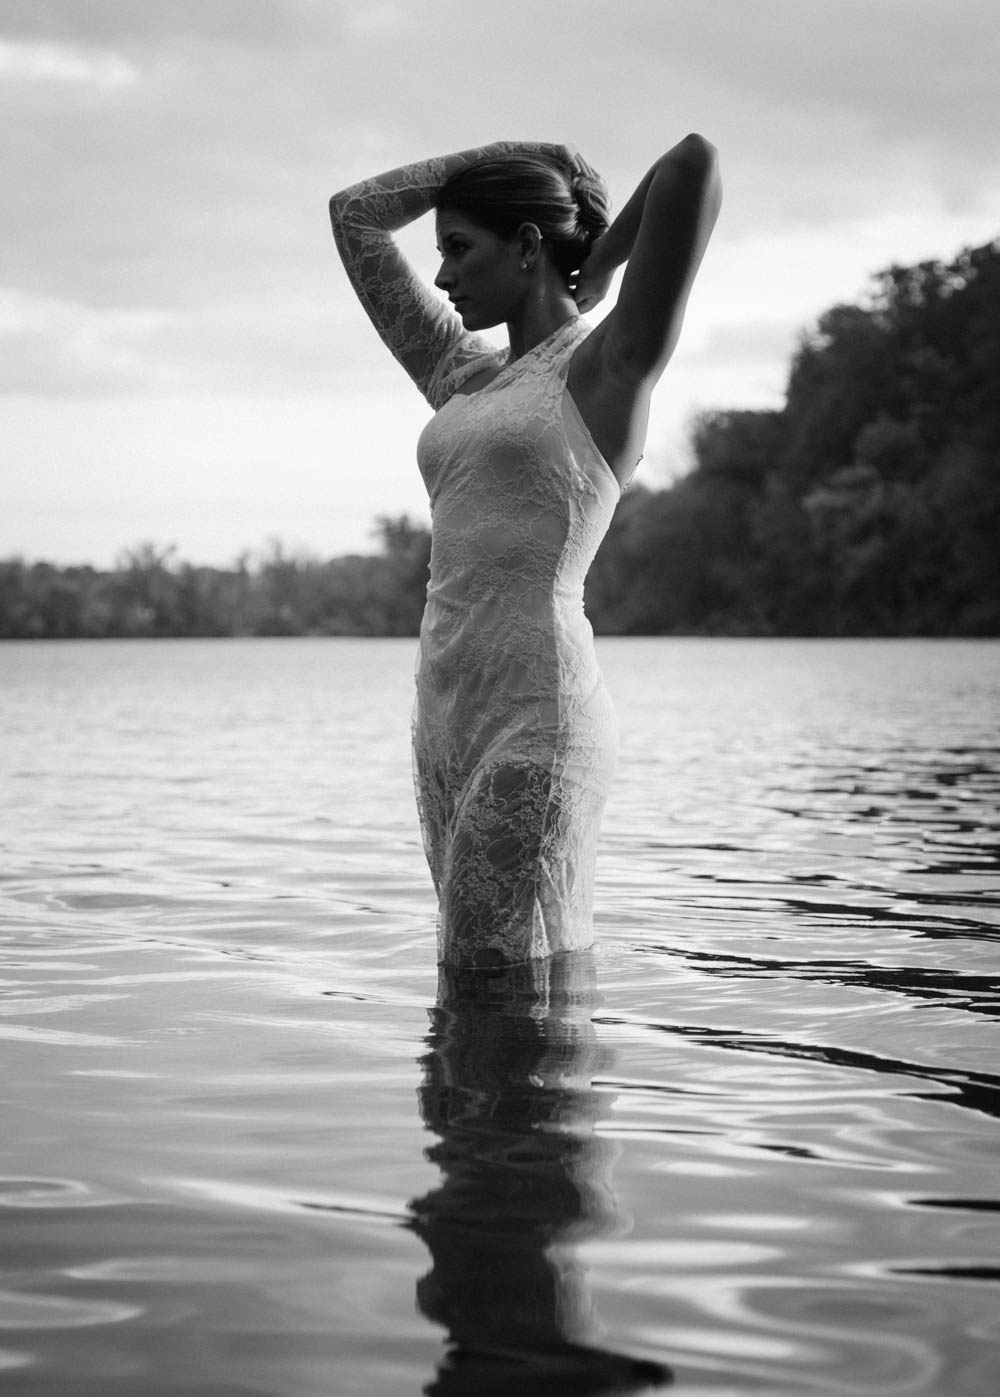 grace-ballerina-lake-black-and-white-0504travis-dewitz